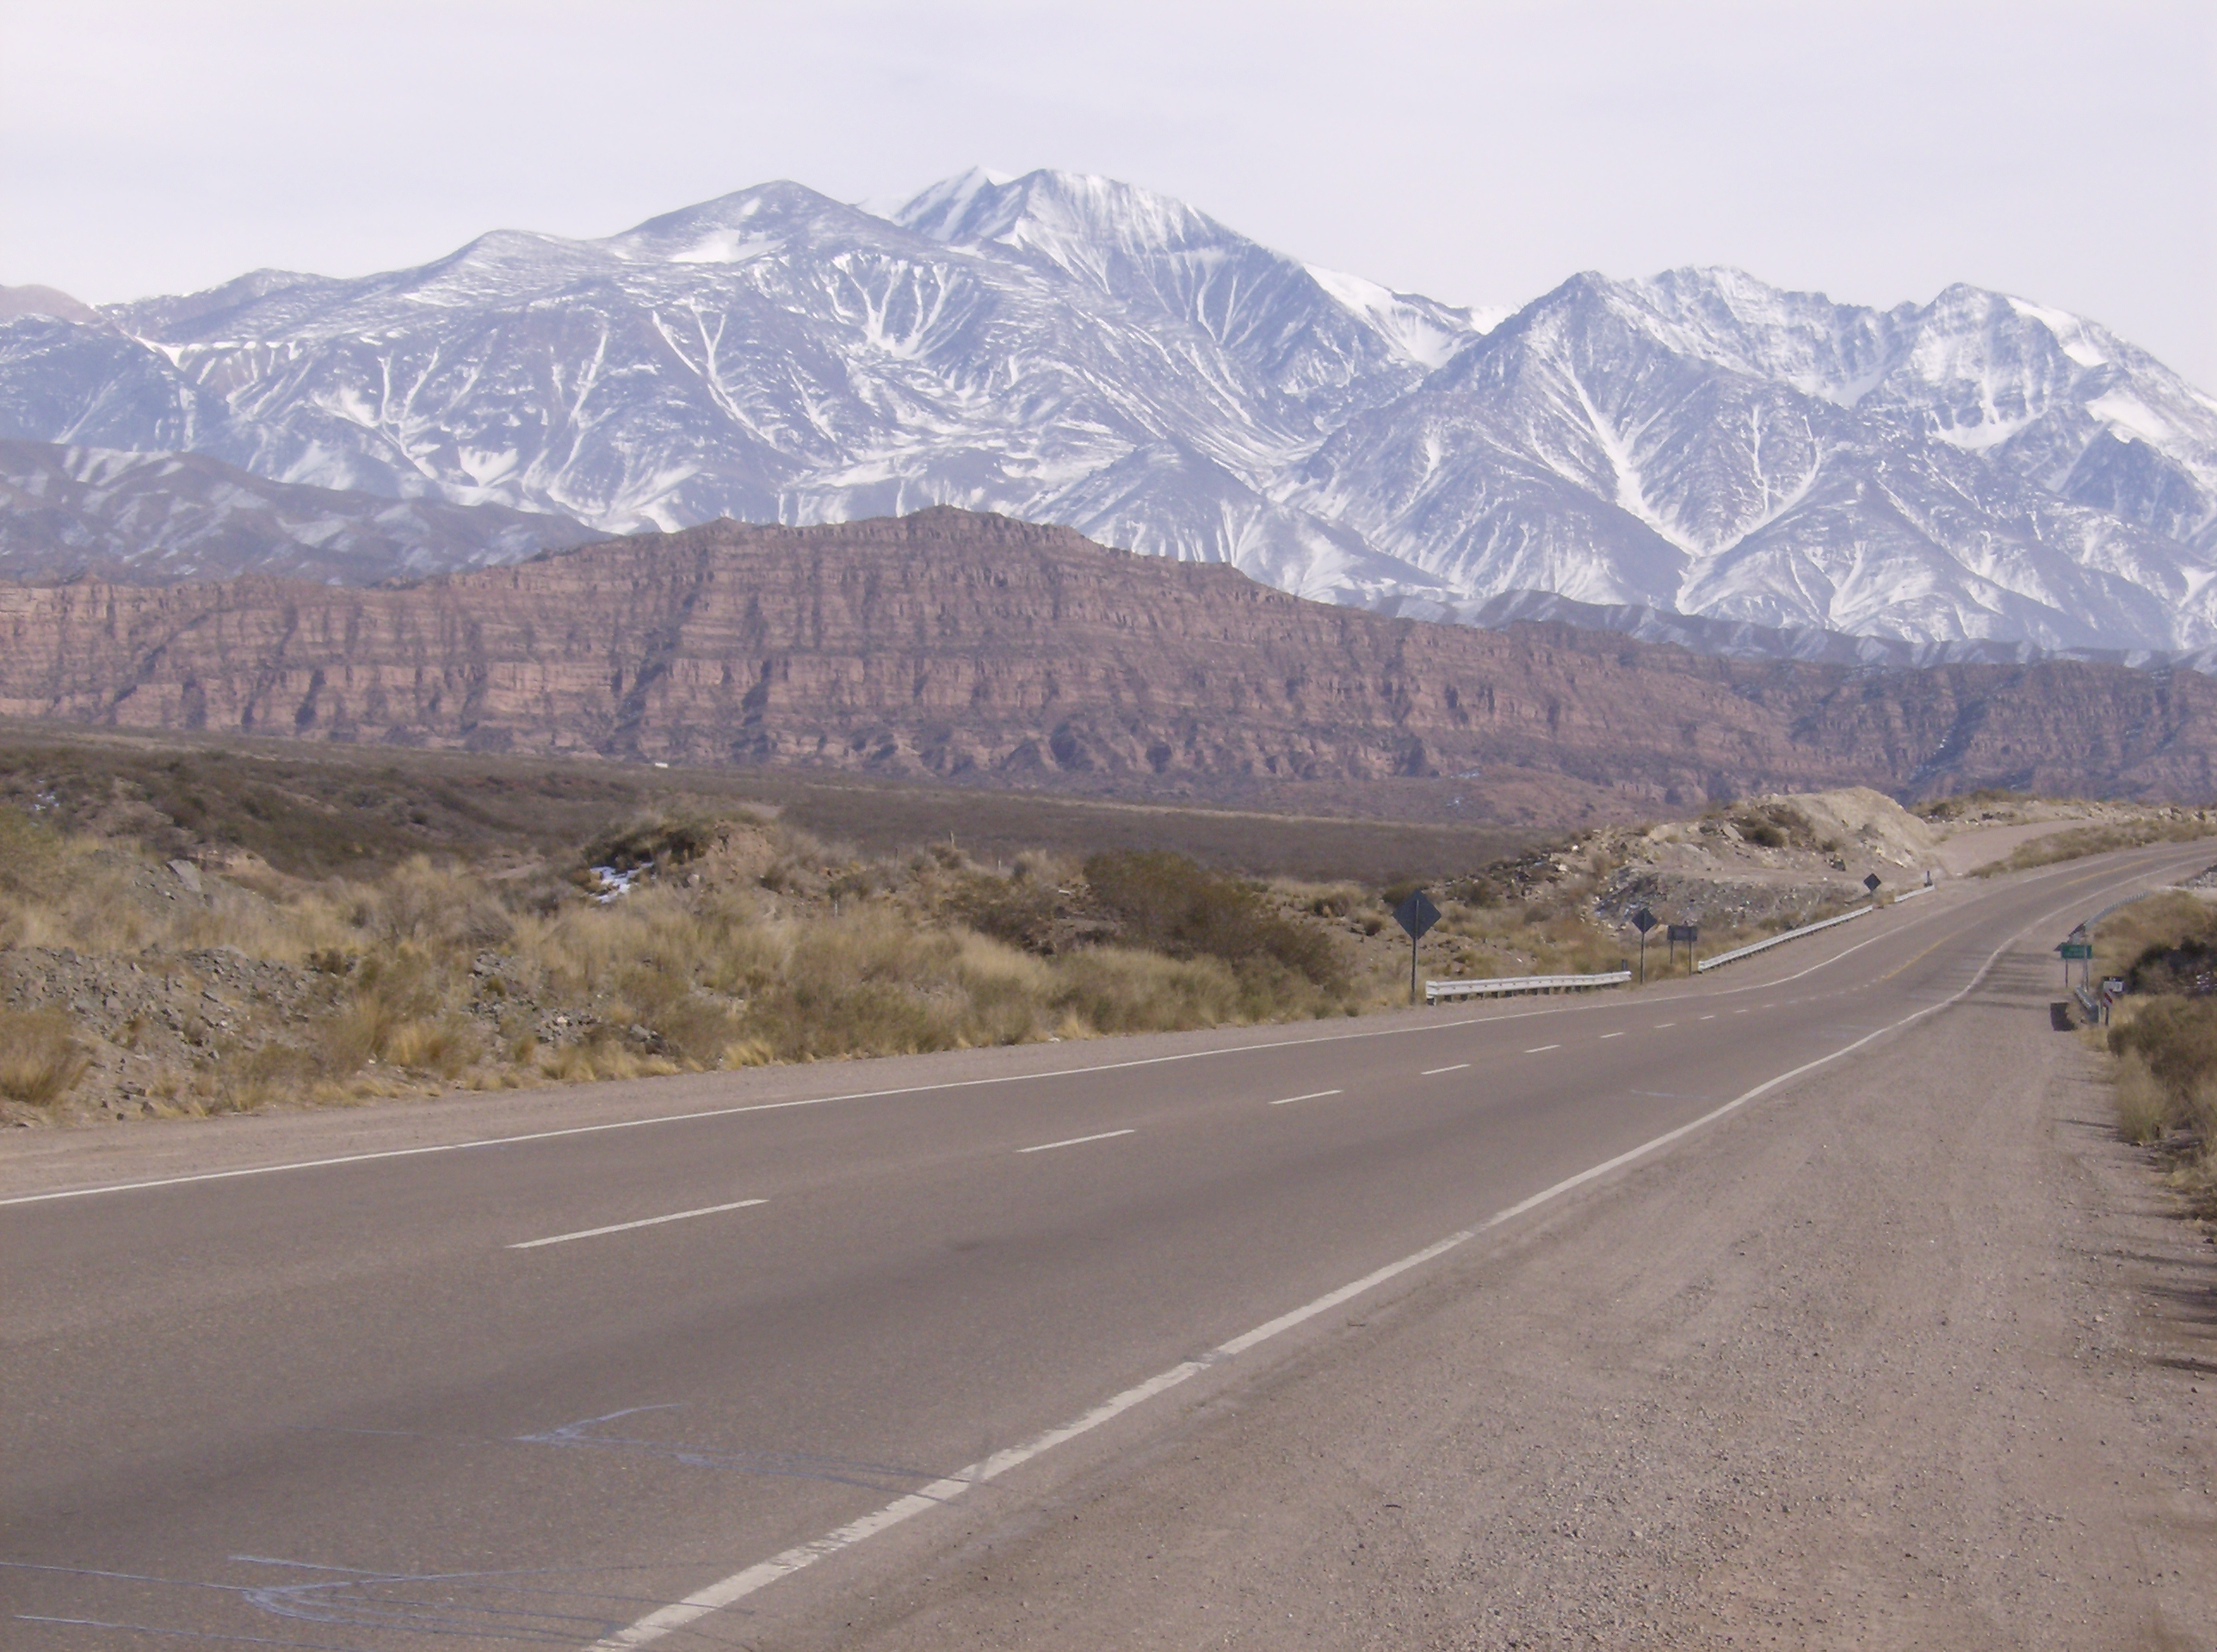 The snowy Andes viewed from the National Route 7.